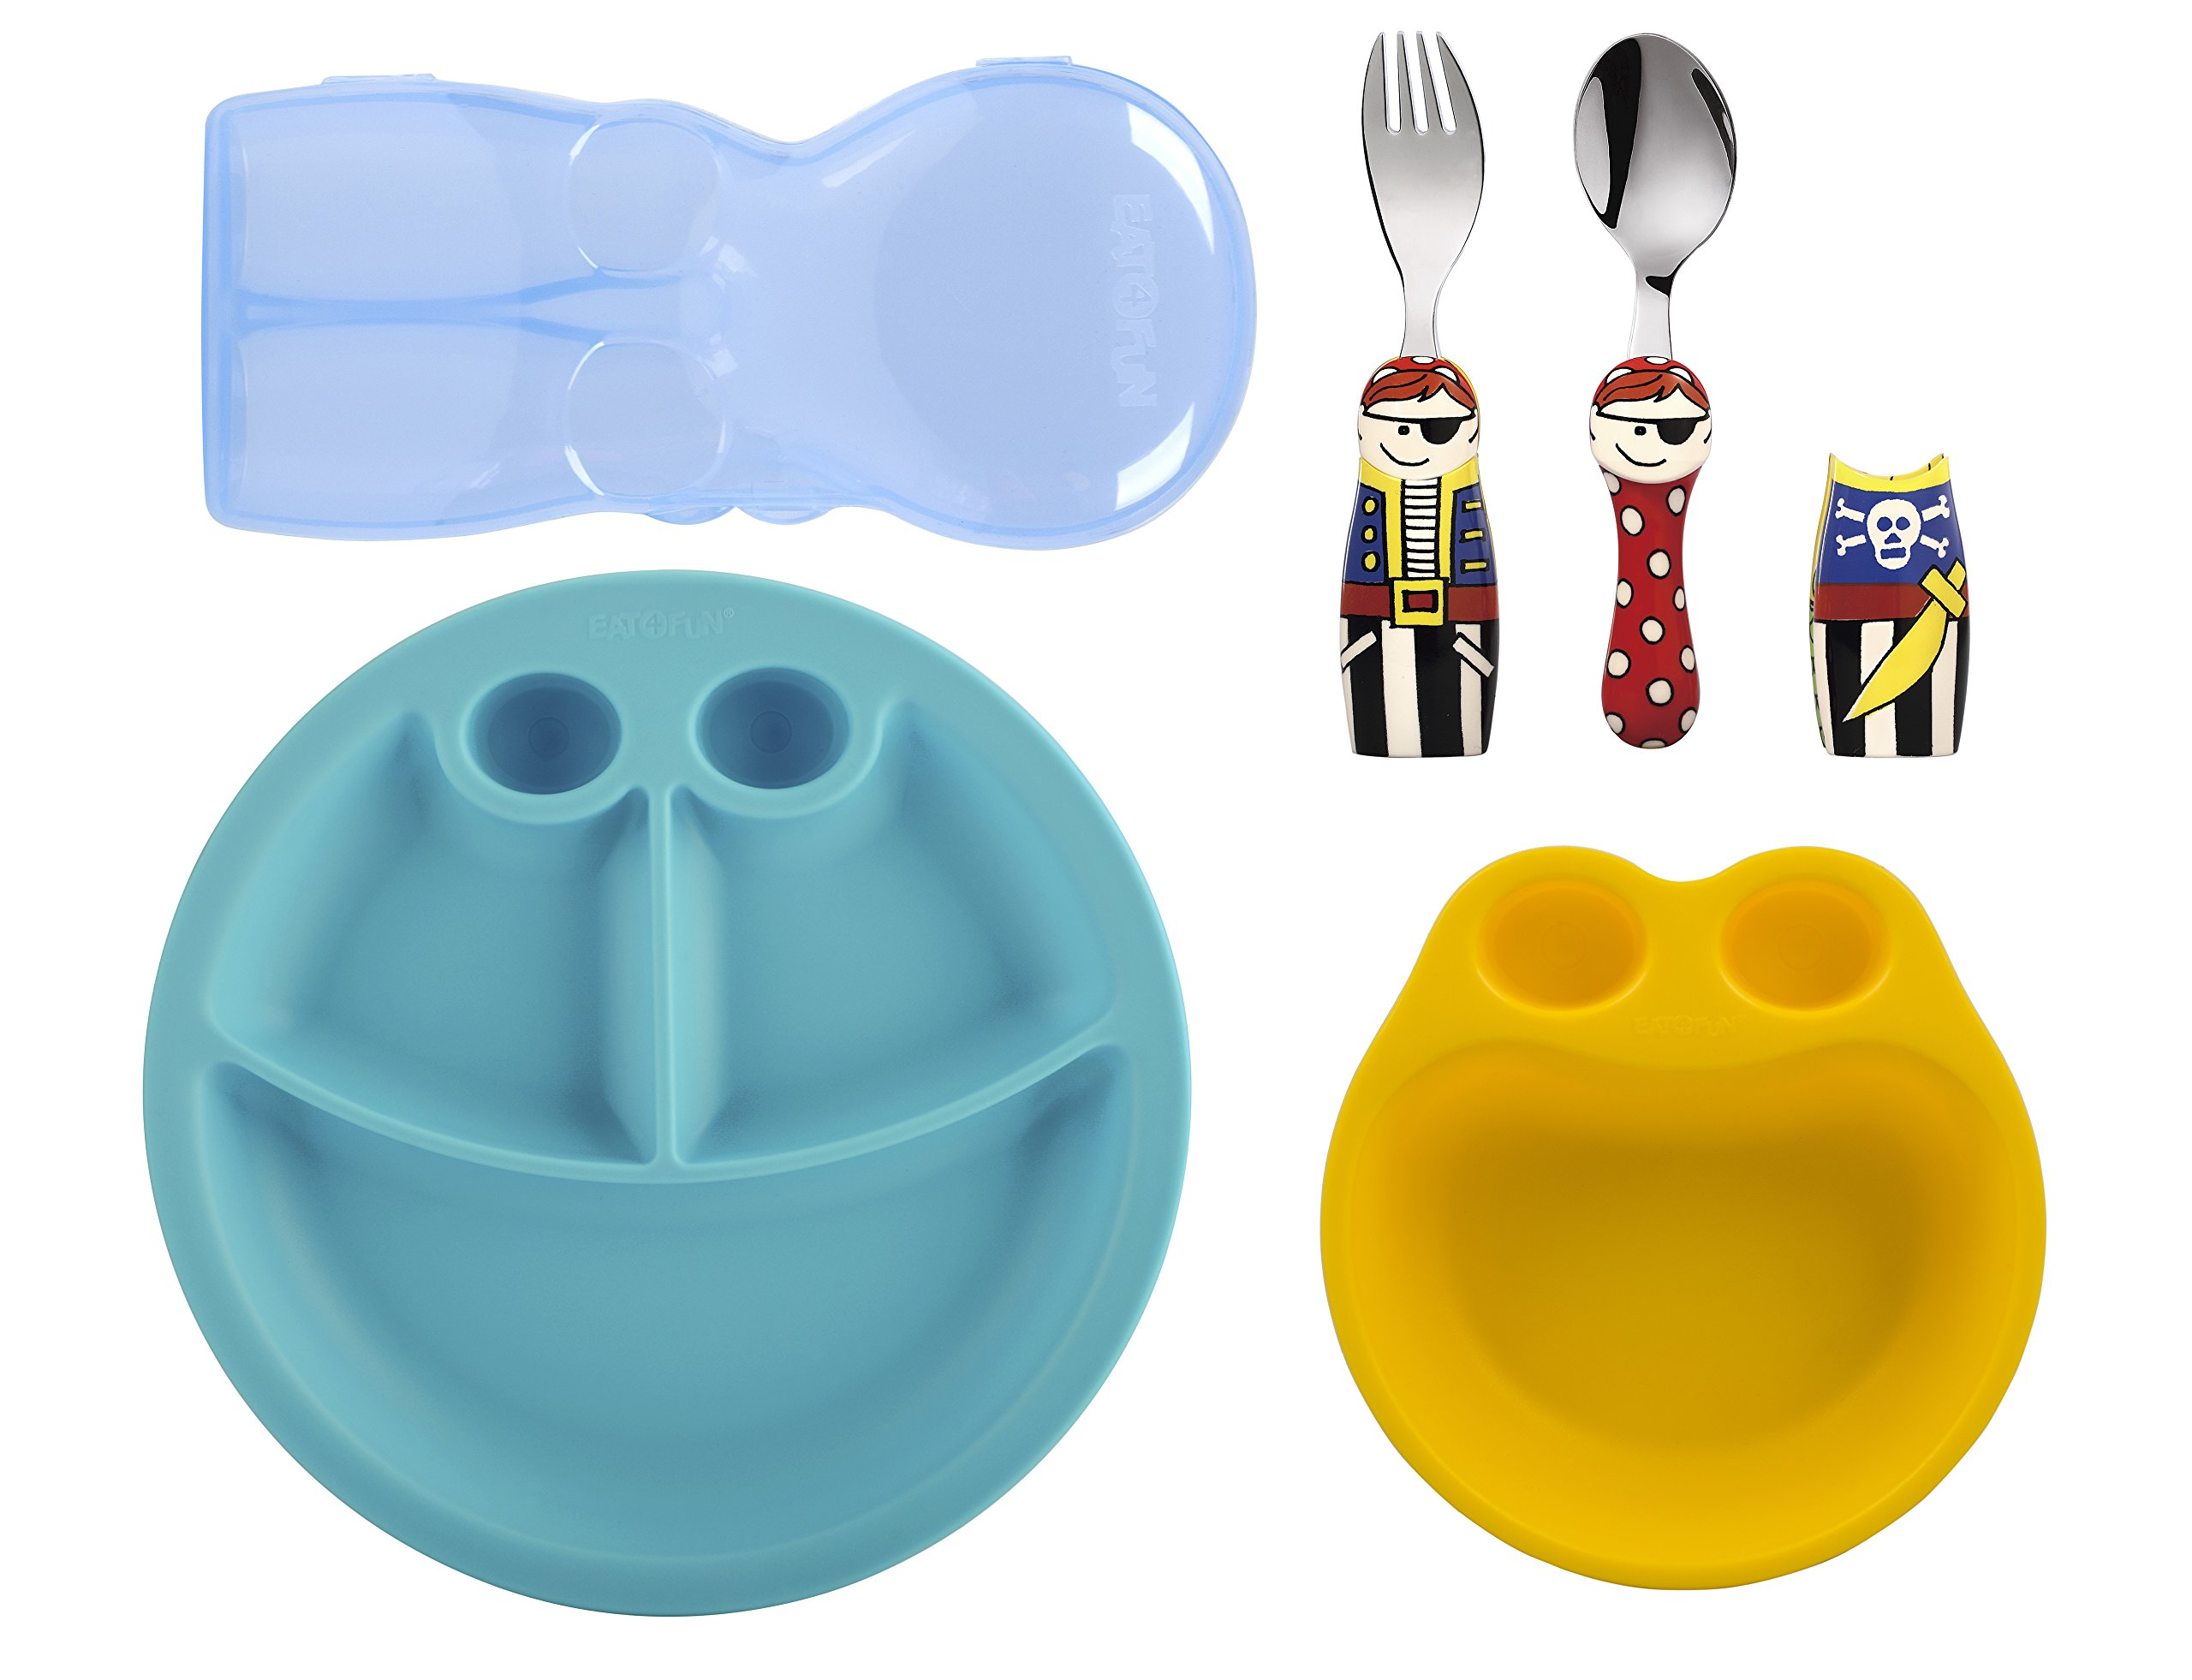 Eat4Fun Kids and Toddler Utensil Set - Pirate Fork & Spoon Plate and Bowl by Eat4Fun (Image #1)